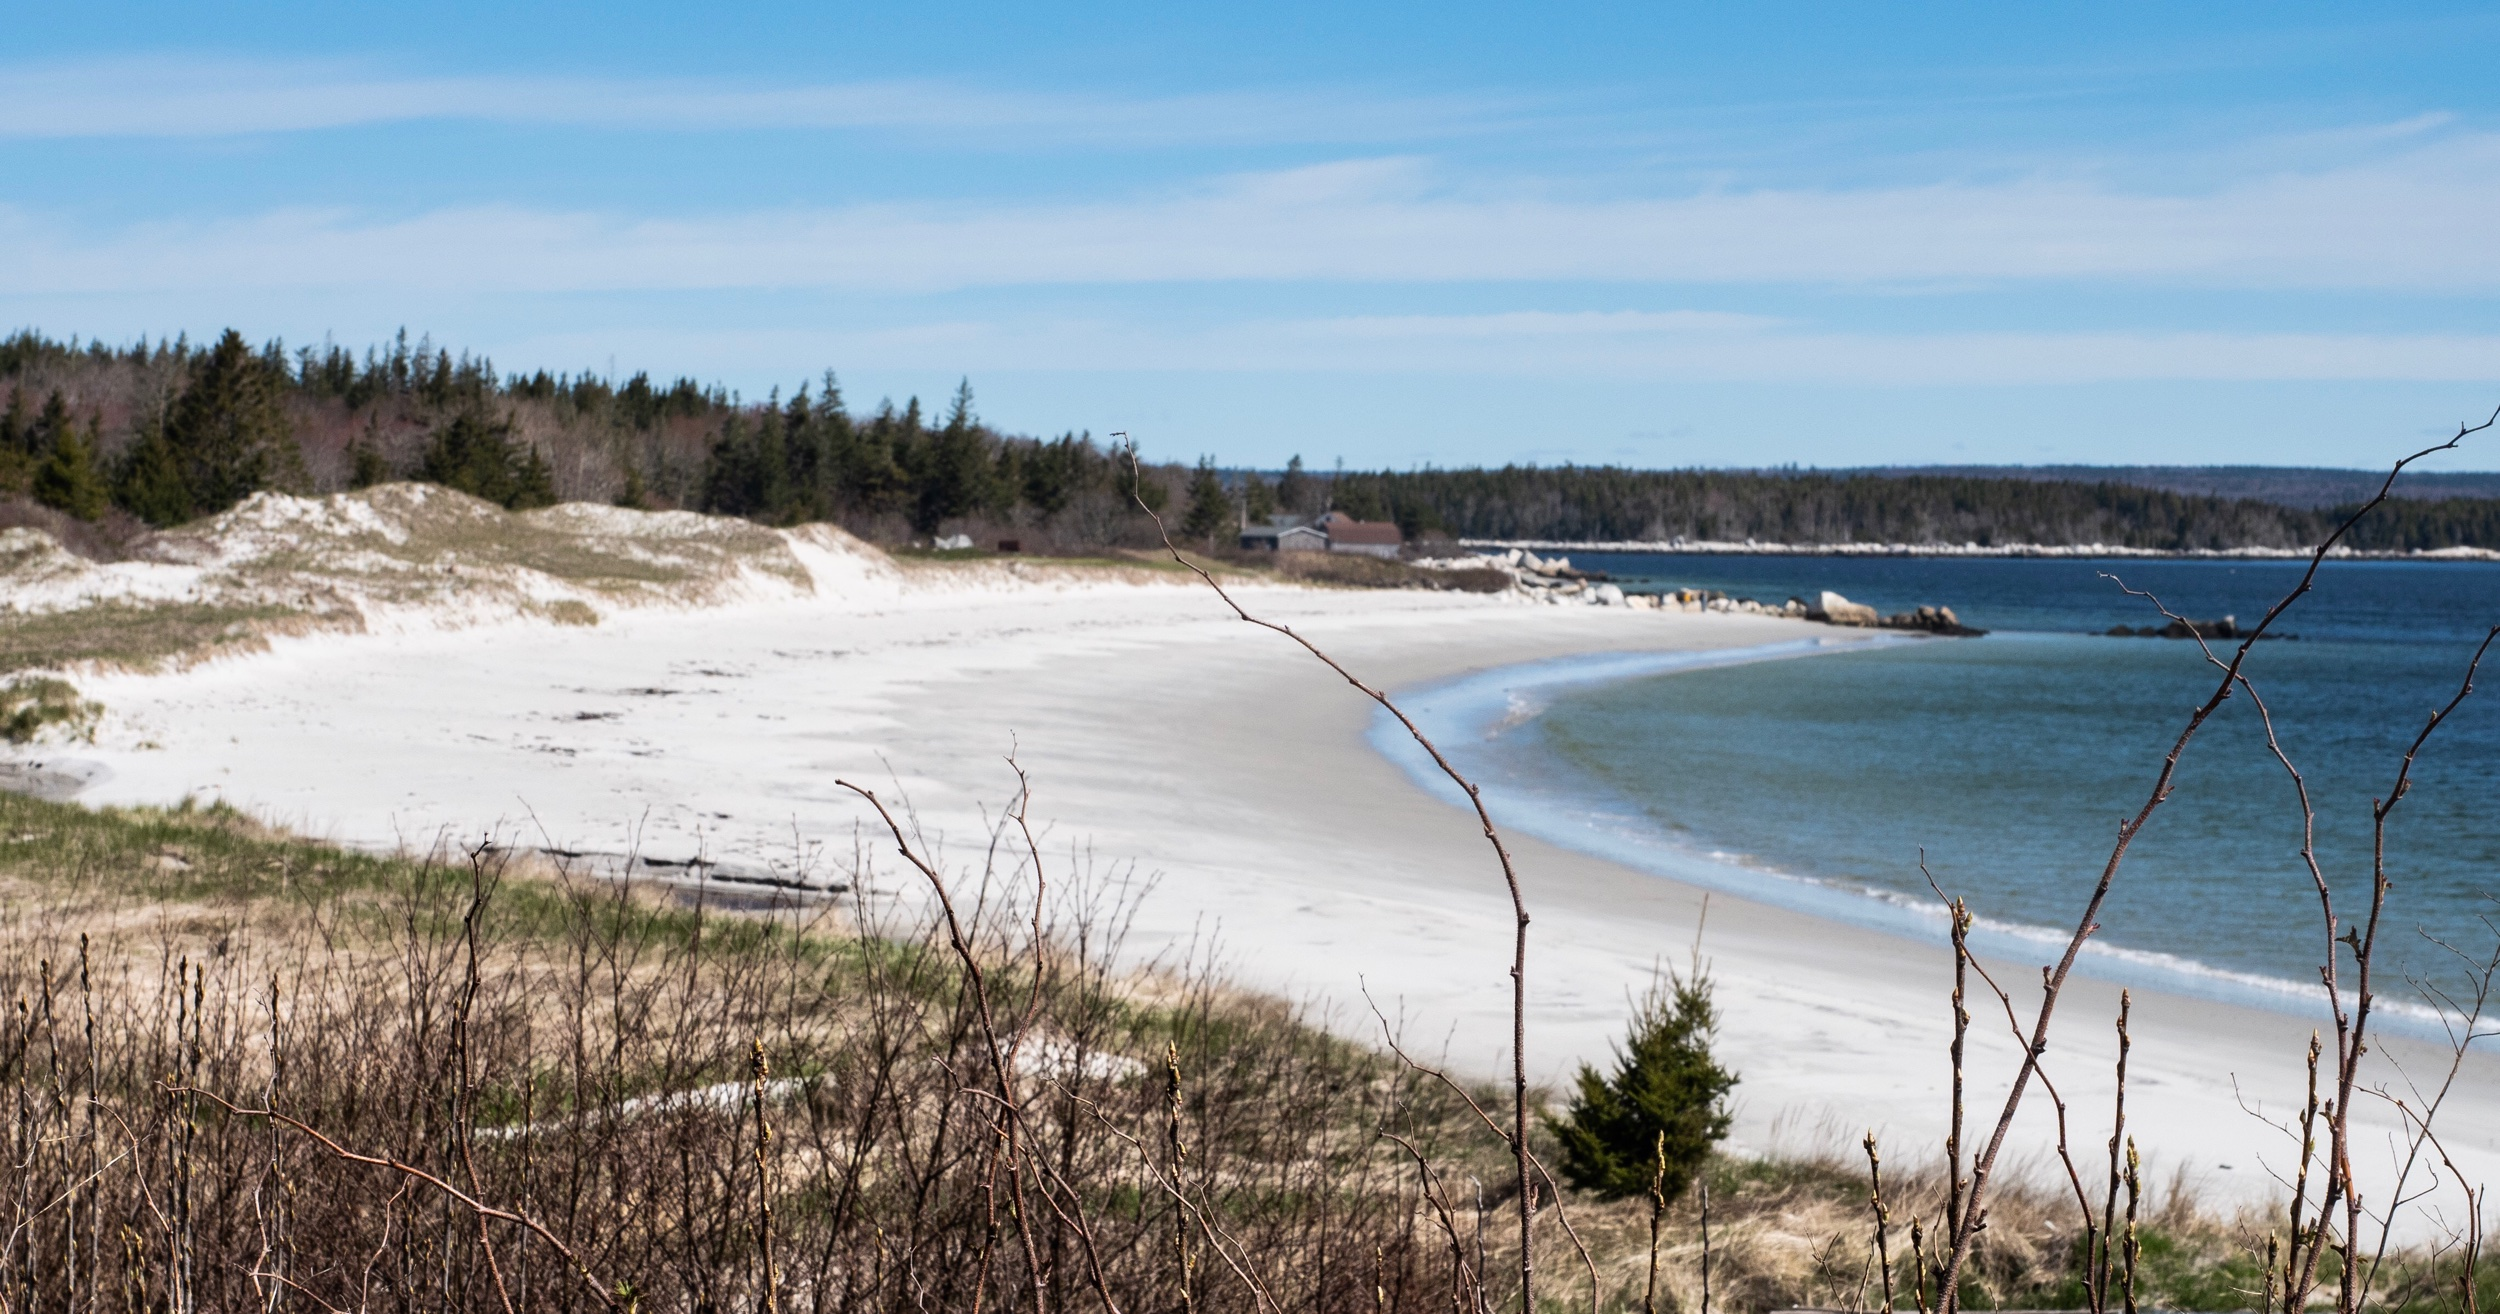 This beach was so commonly ordinary for this area along the southwestern coast, I could not even find a name for it. All of the more notable beaches were in Provincial Parks that, unfortunately, we're still closed for the season.